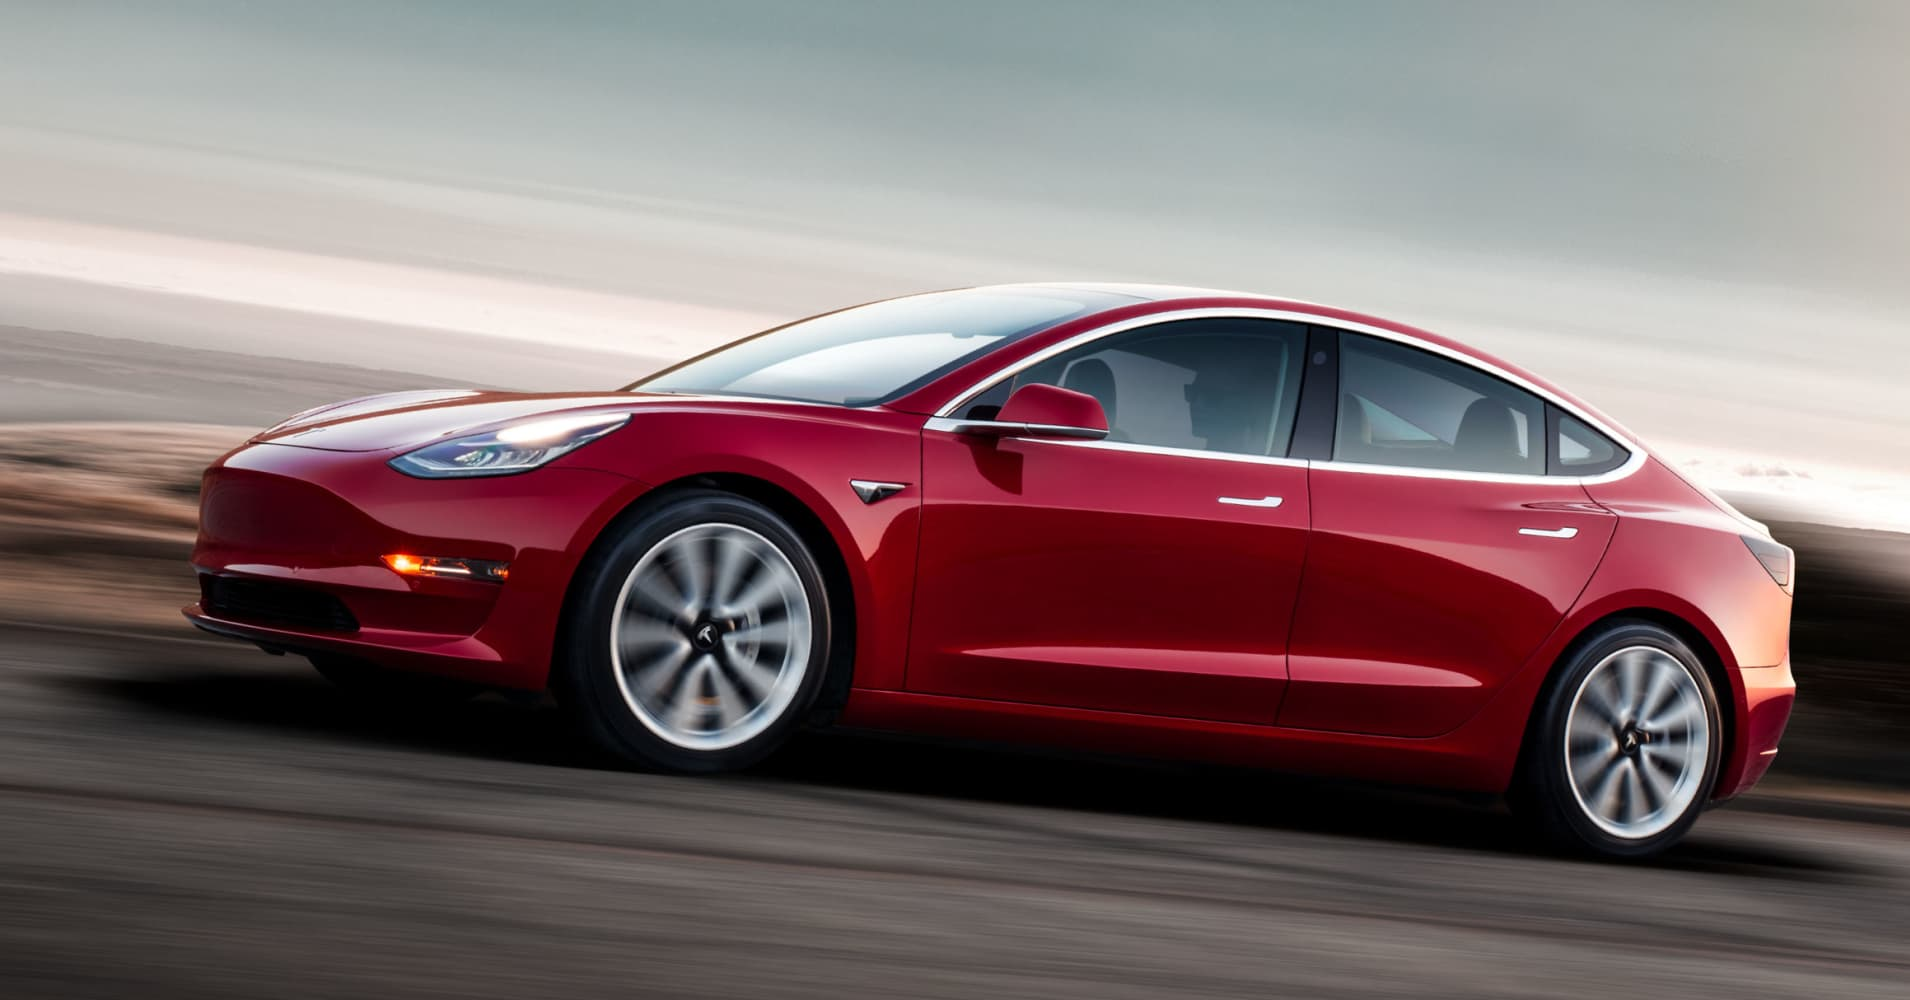 Fund manager with $4,000 Tesla target says this is the next big thing for stock